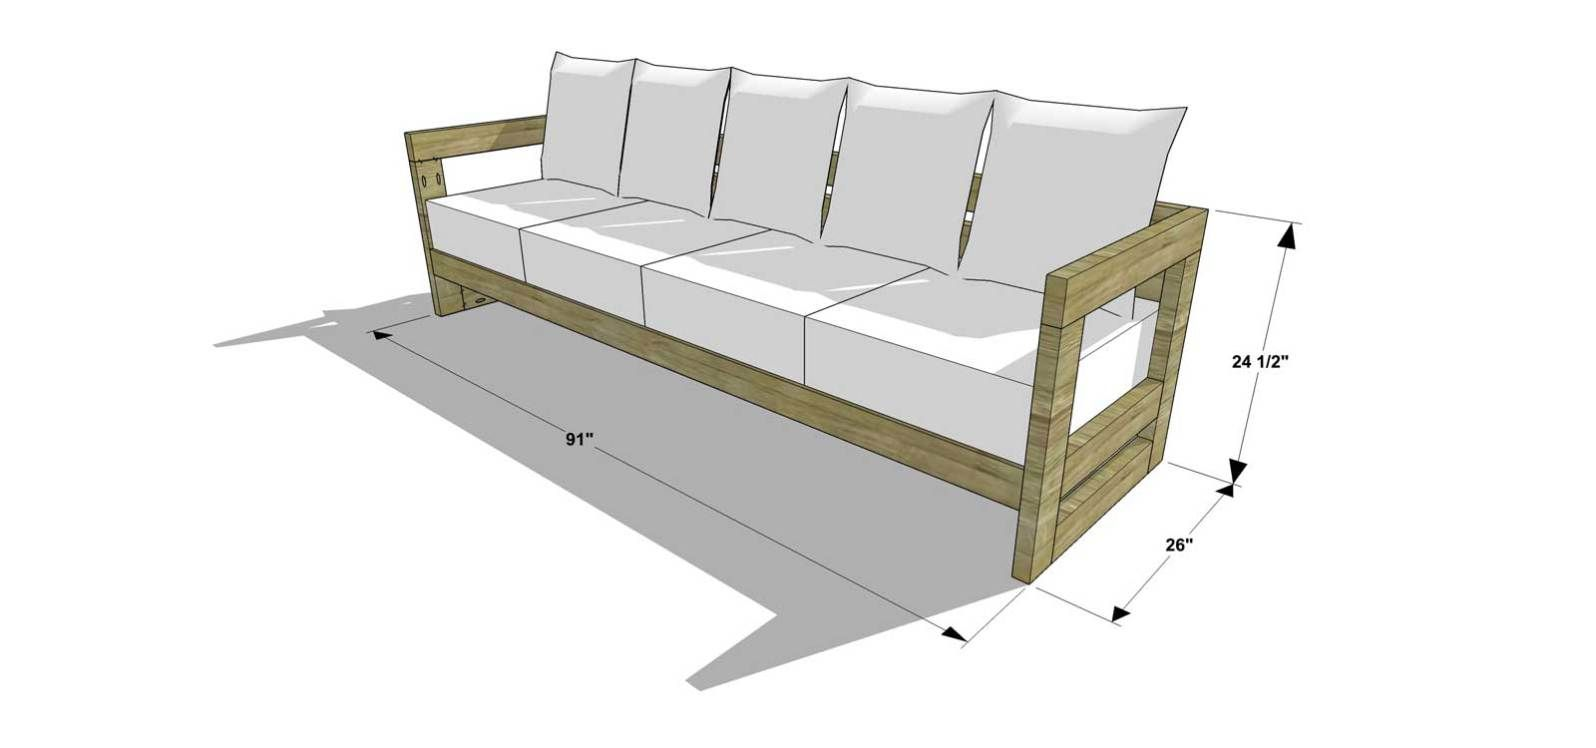 Free Diy Furniture Plans How To Build An Aegean Outdoor Sofa The Design Confidential Diy Furniture Plans Outdoor Sofa Furniture Plans